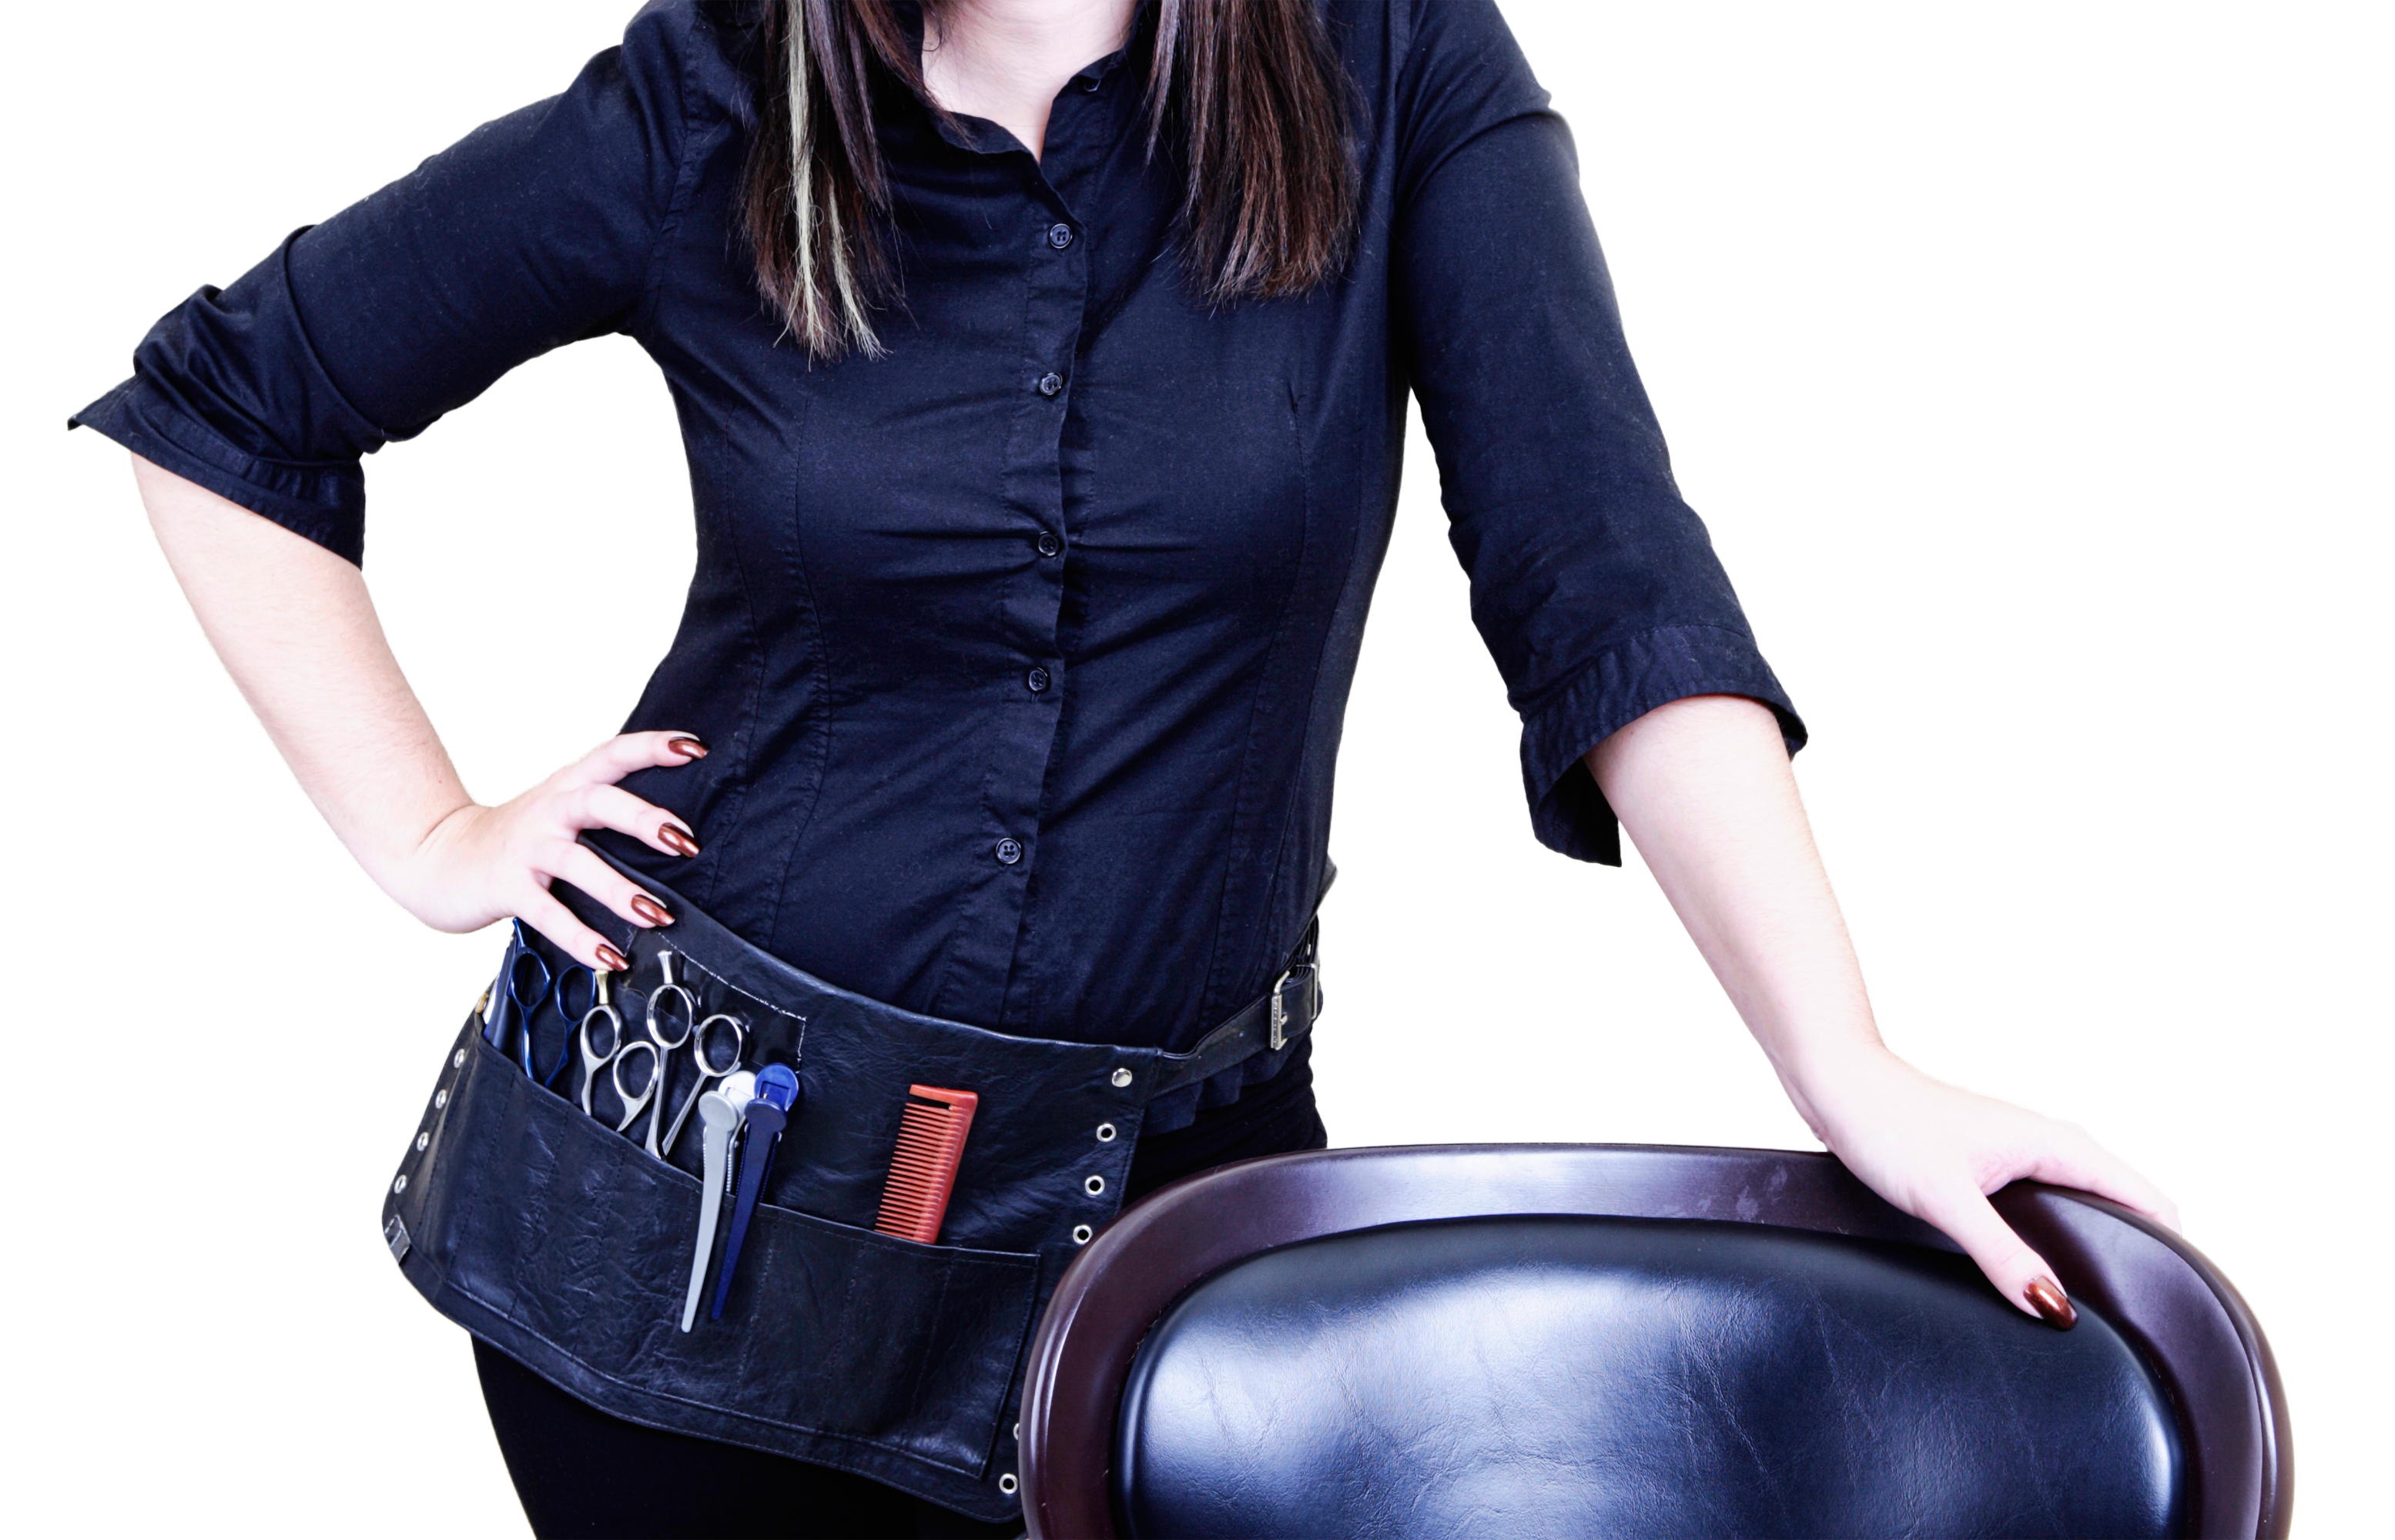 Hair stylist leaning on her salon chair with an apron full of hair cutting scissors and combs